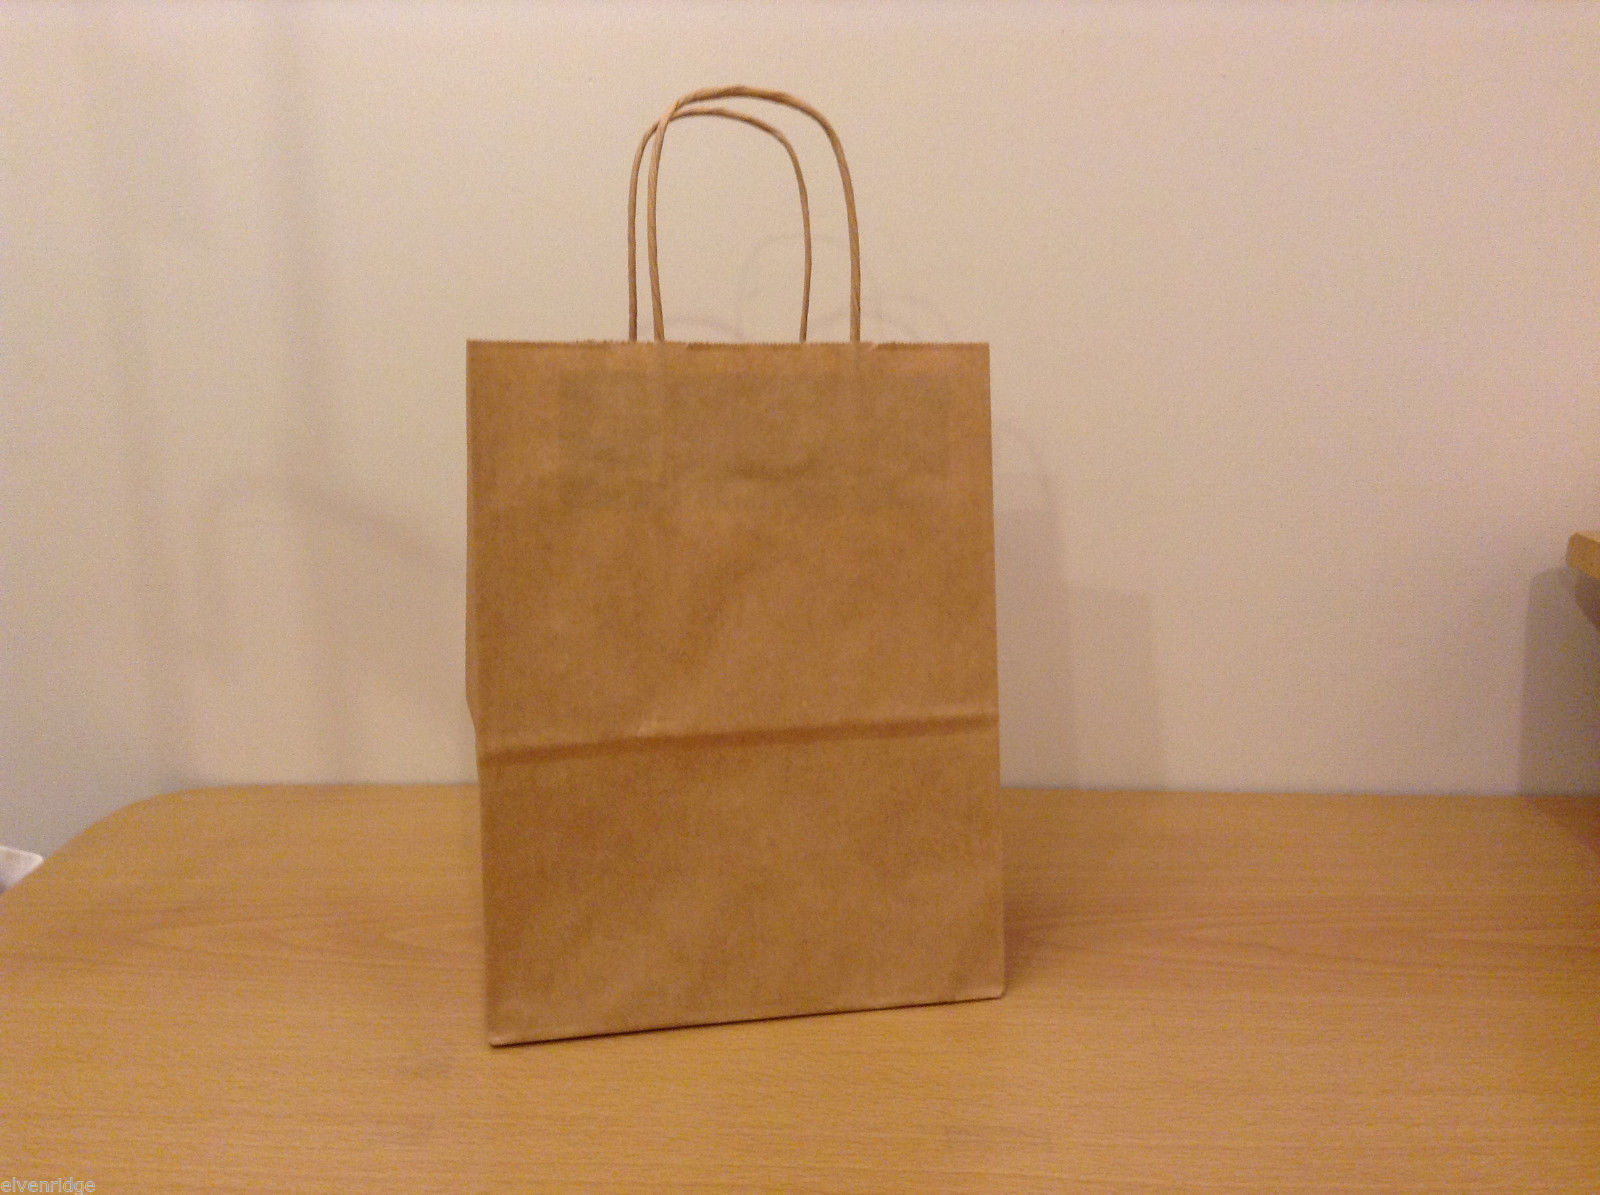 Lot of 230 Brown Shopper Craft Bags 8x10x4 Cub Uline, New unused